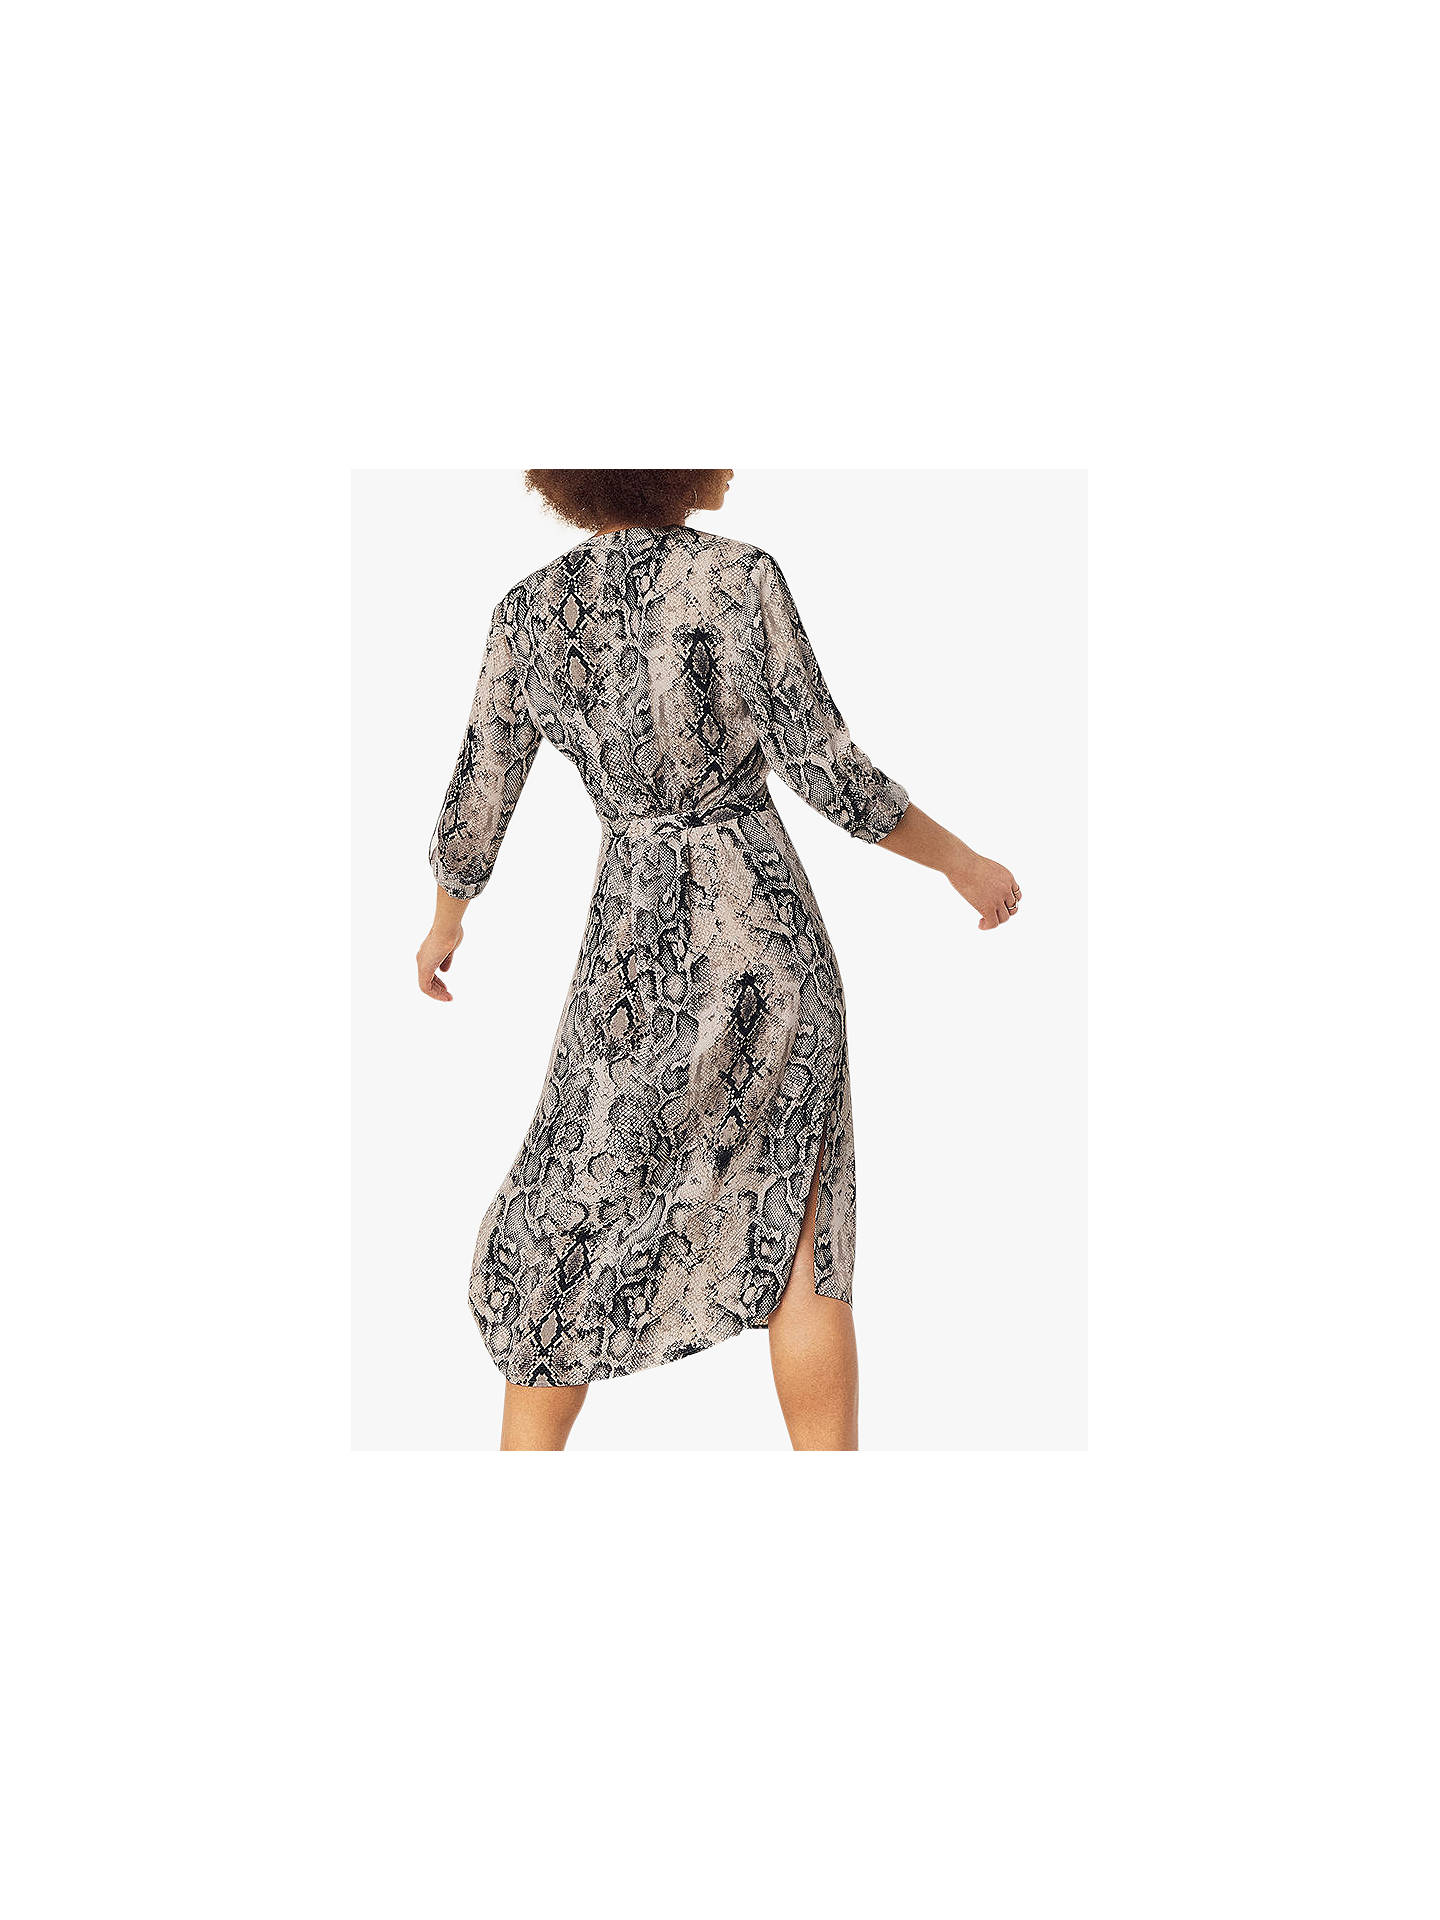 8d3cc1c0a8d9 ... Buy Oasis Snake Print Shirt Dress, Brown, 6R Online at johnlewis.com ...